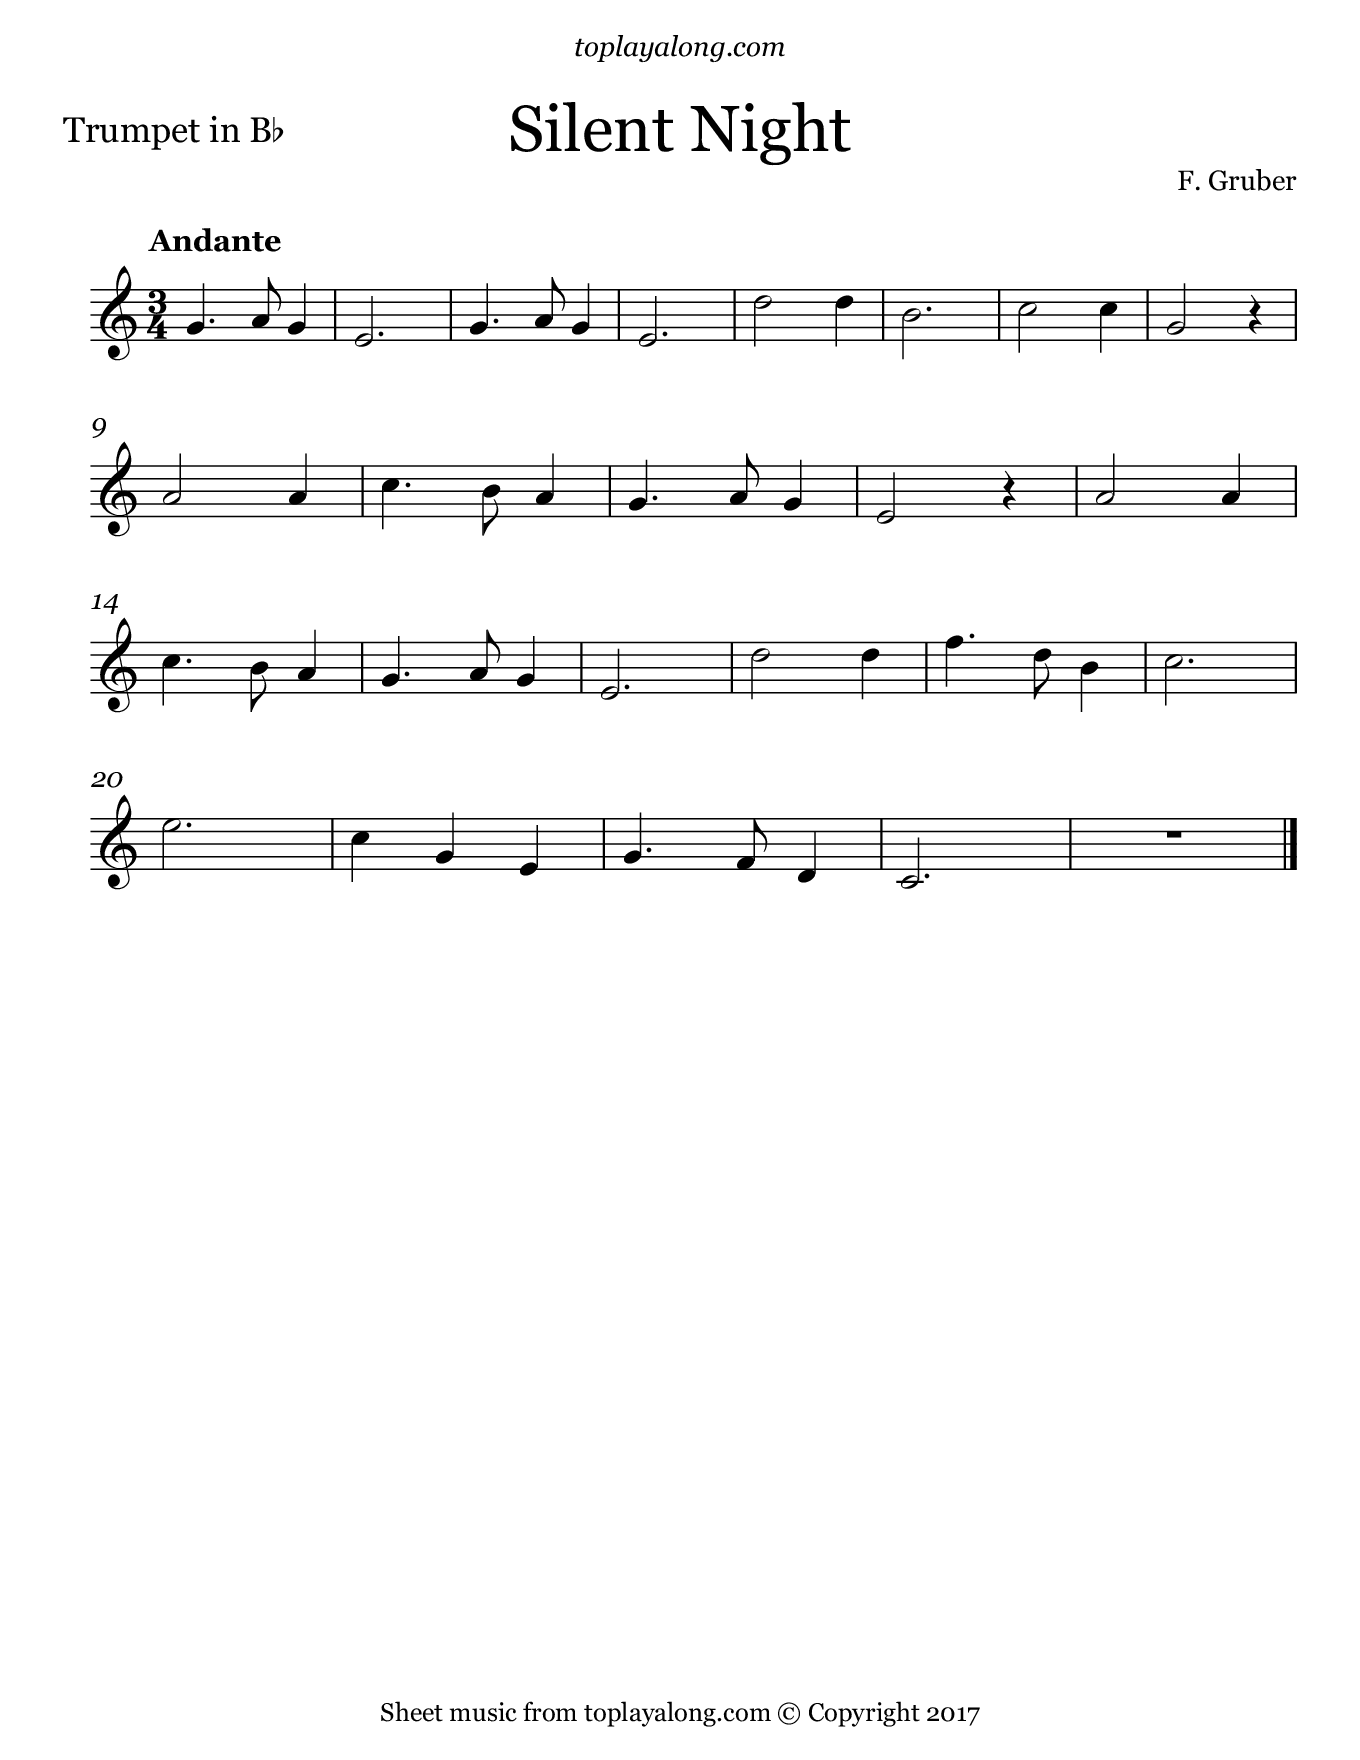 Silent Night by Gruber. Sheet music for Trumpet, page 1.